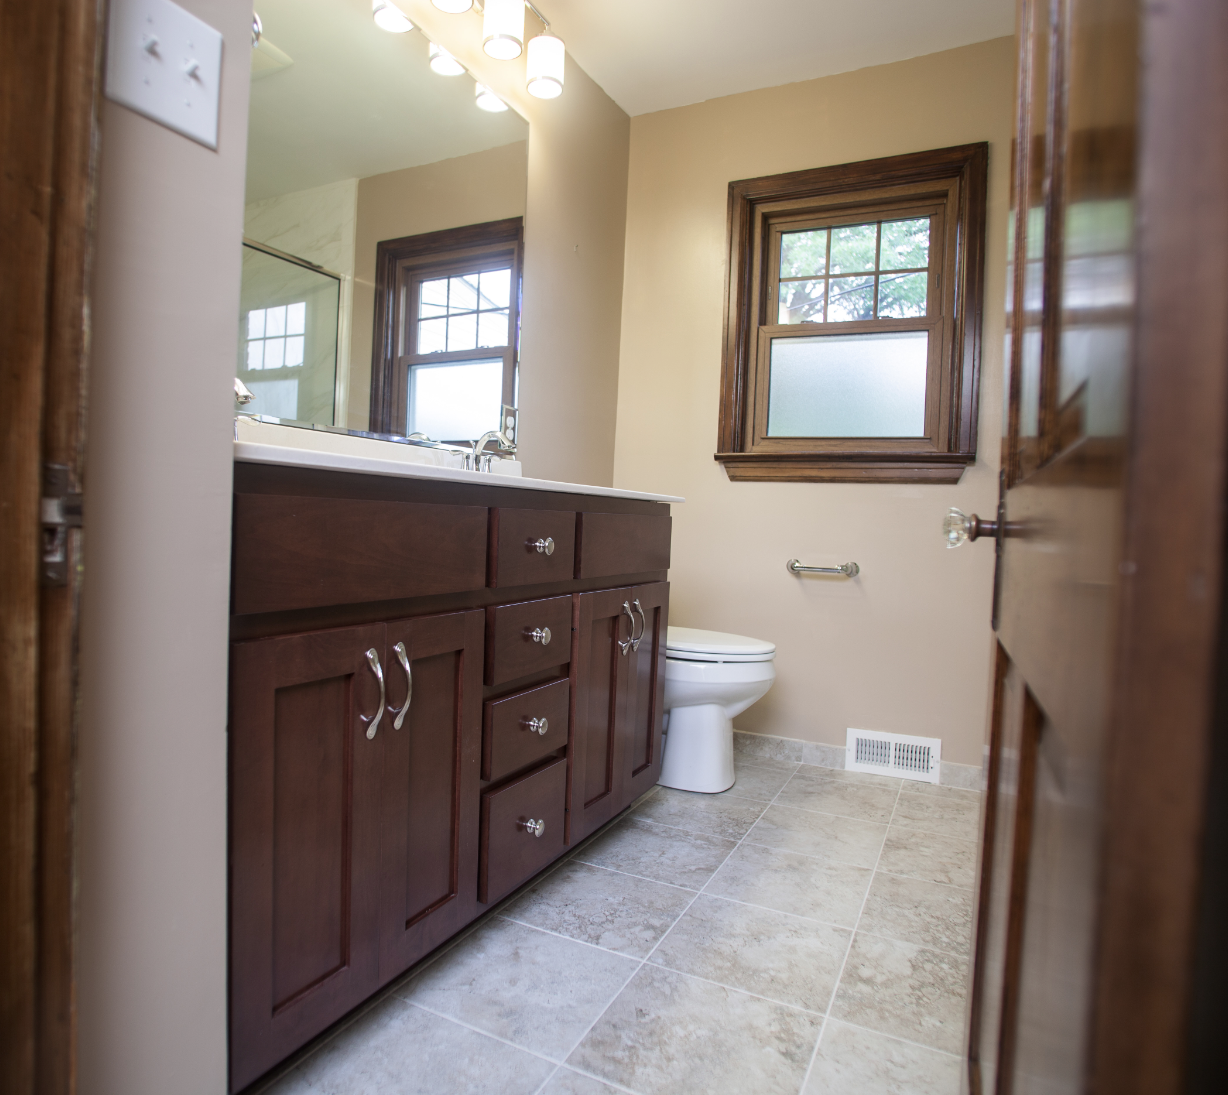 Bathroom Remodeling In Louisville Ky Bathrooms Remodel Restroom Remodel Bathroom Design